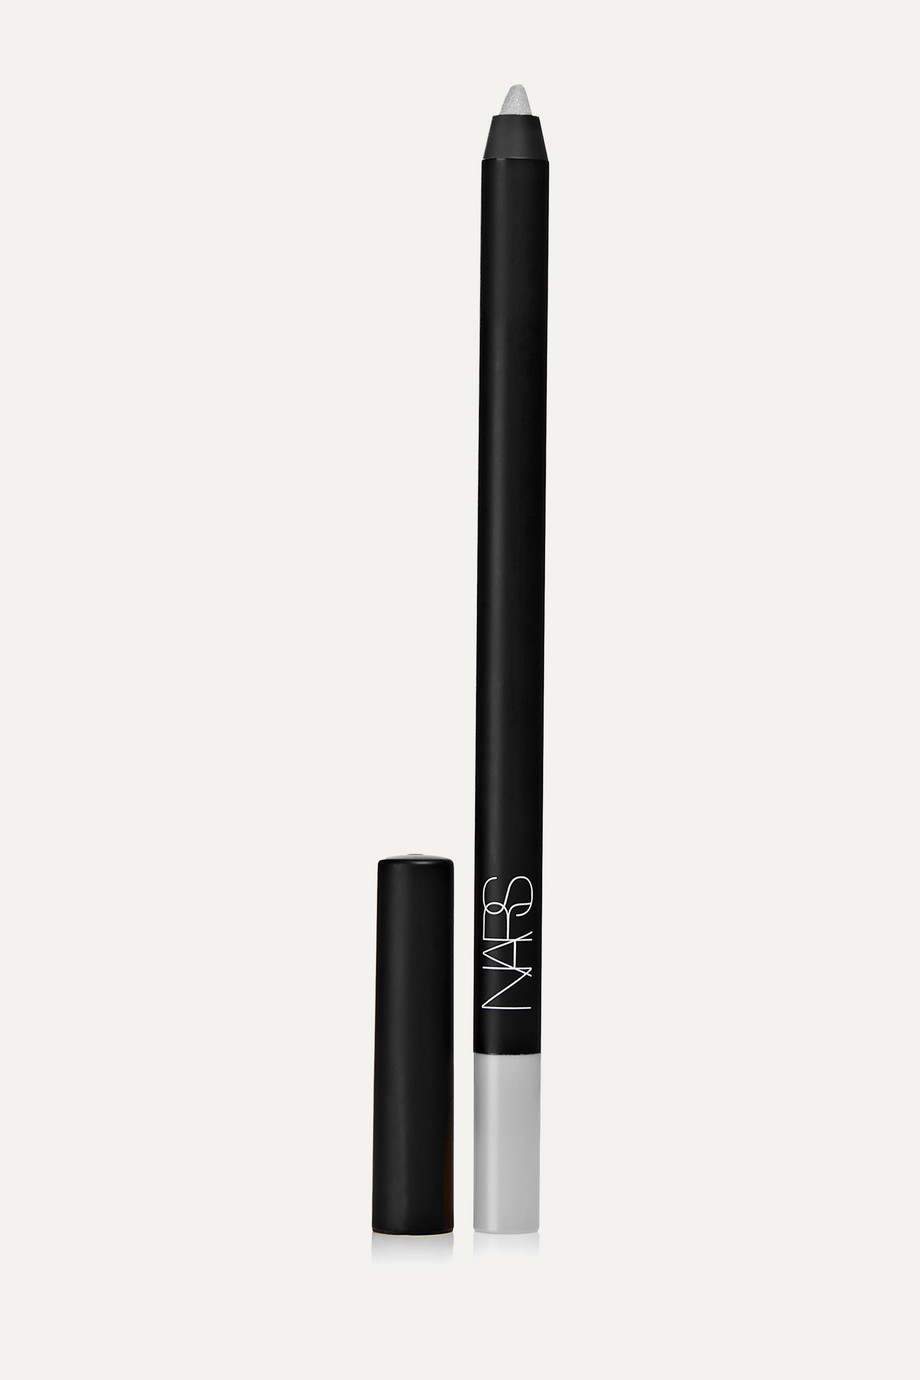 NARS High-Pigment Longwear Eyeliner - The Strip